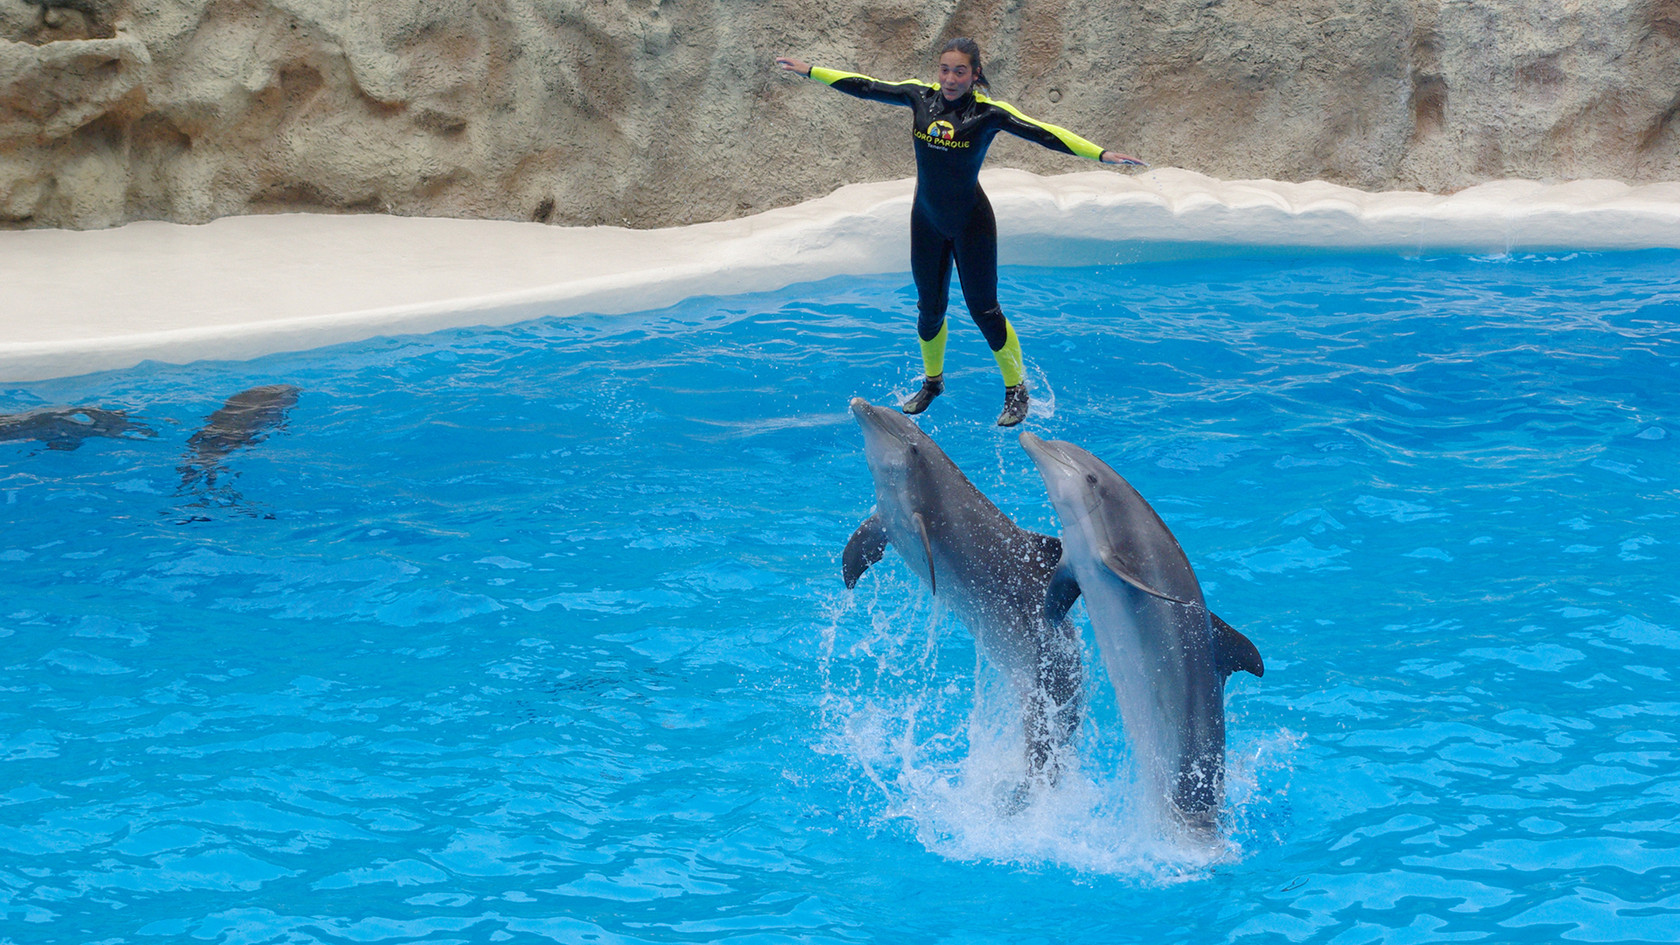 DUBAI DOLPHNARIUM-DOLPHIN & SEAL SHOW Indoor venue with dolphin & seal shows